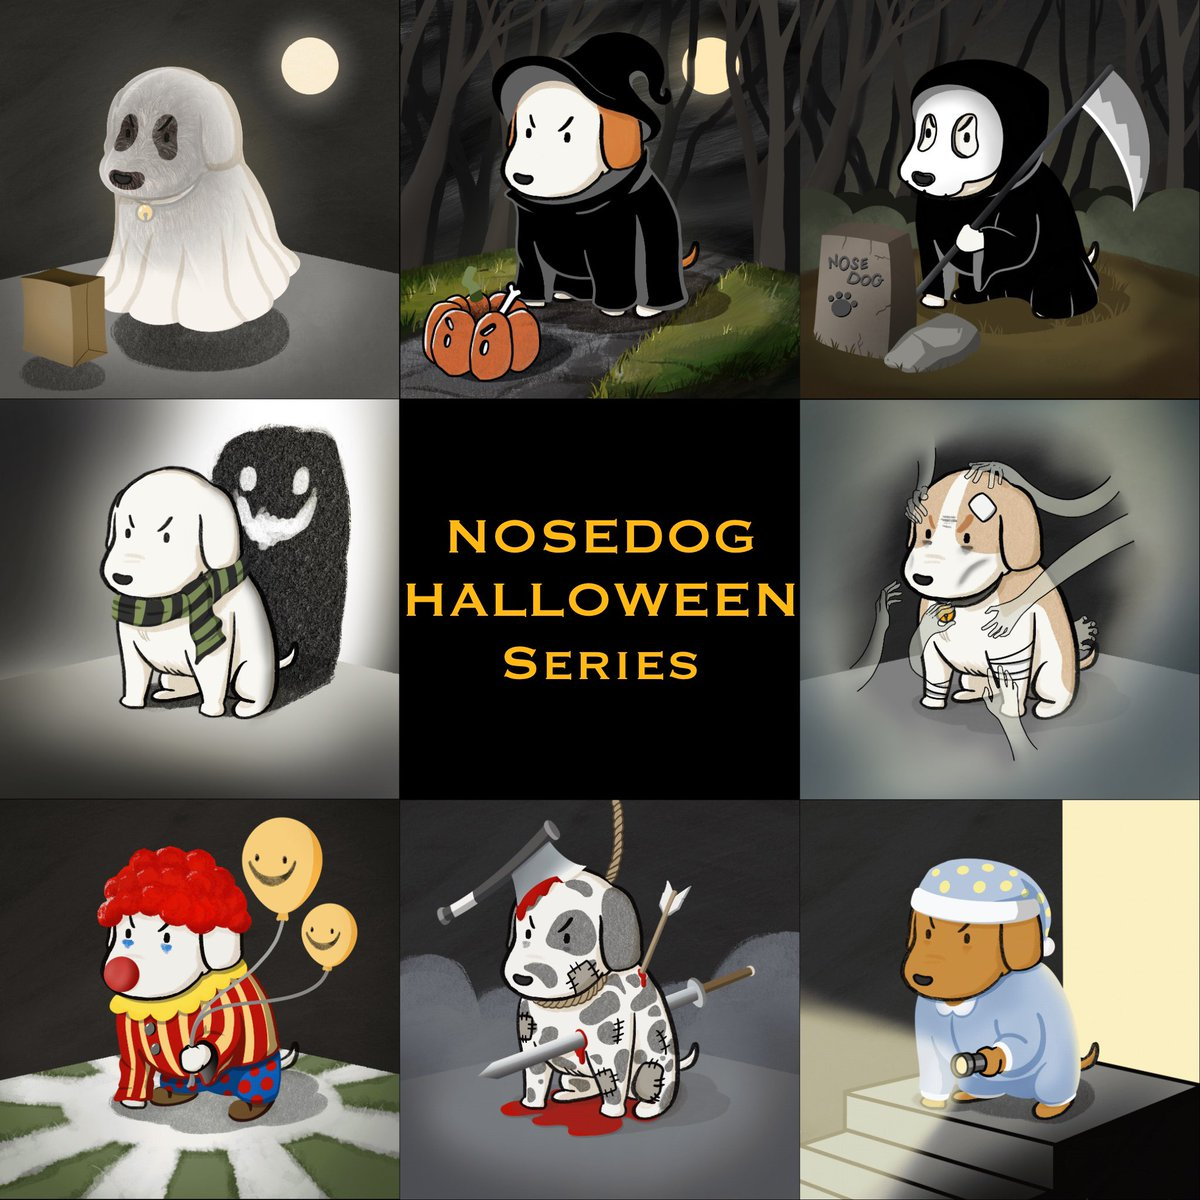 """NOSEDOG """"Halloween series"""" is available now  🧙🏻♀️🤡👻💀🎃😈🐶 (48/120)  Check it out here opensea.io/collection/nos…  #Halloween #NFTTHAILAND #NFTdrops #nftcollector #NFTcommunitiy"""